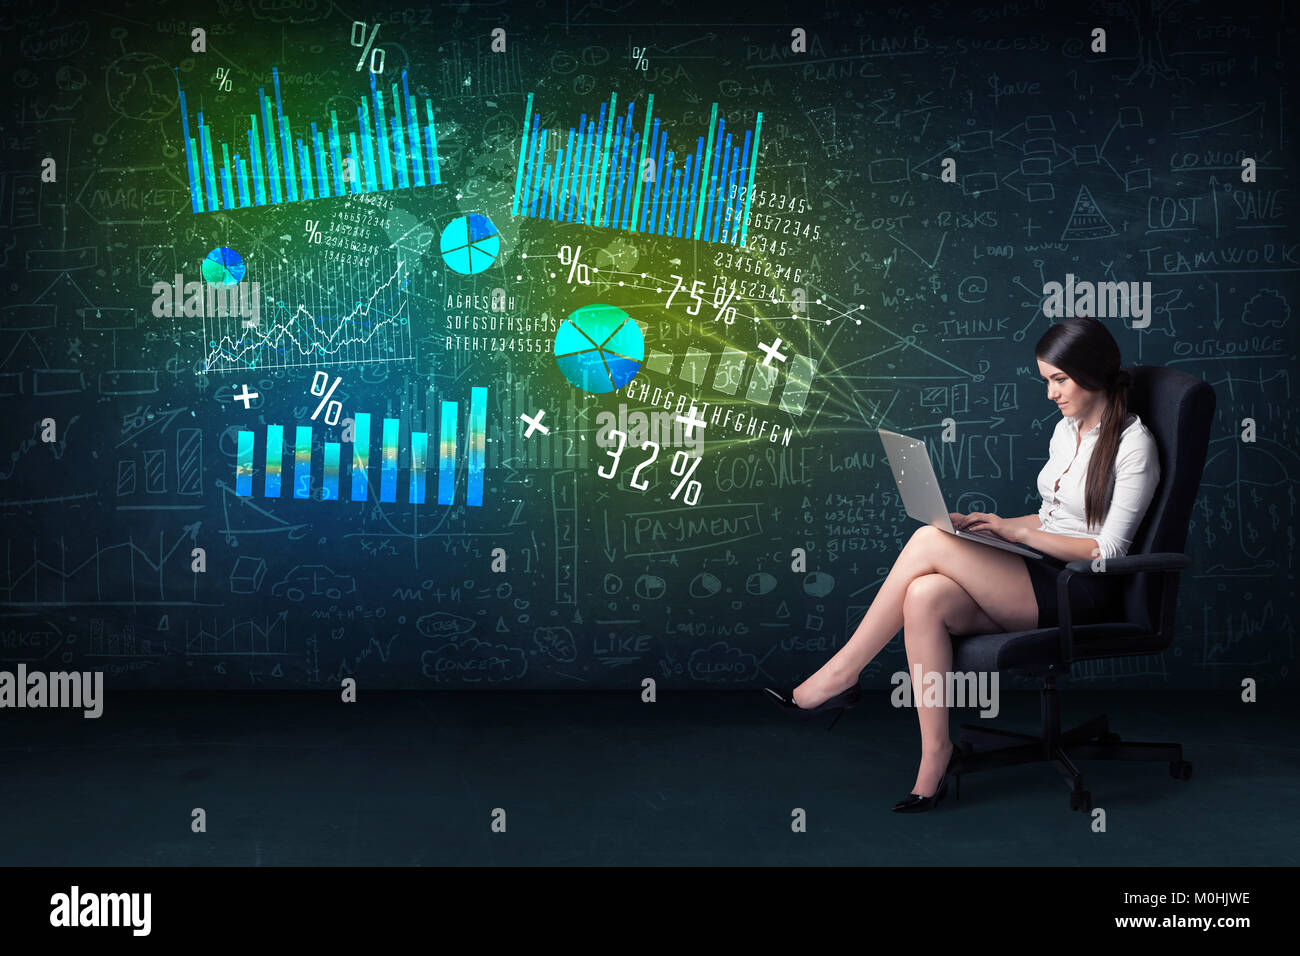 Businesswoman in office with lapotp in hand and high tech graph charts concept on background - Stock Image